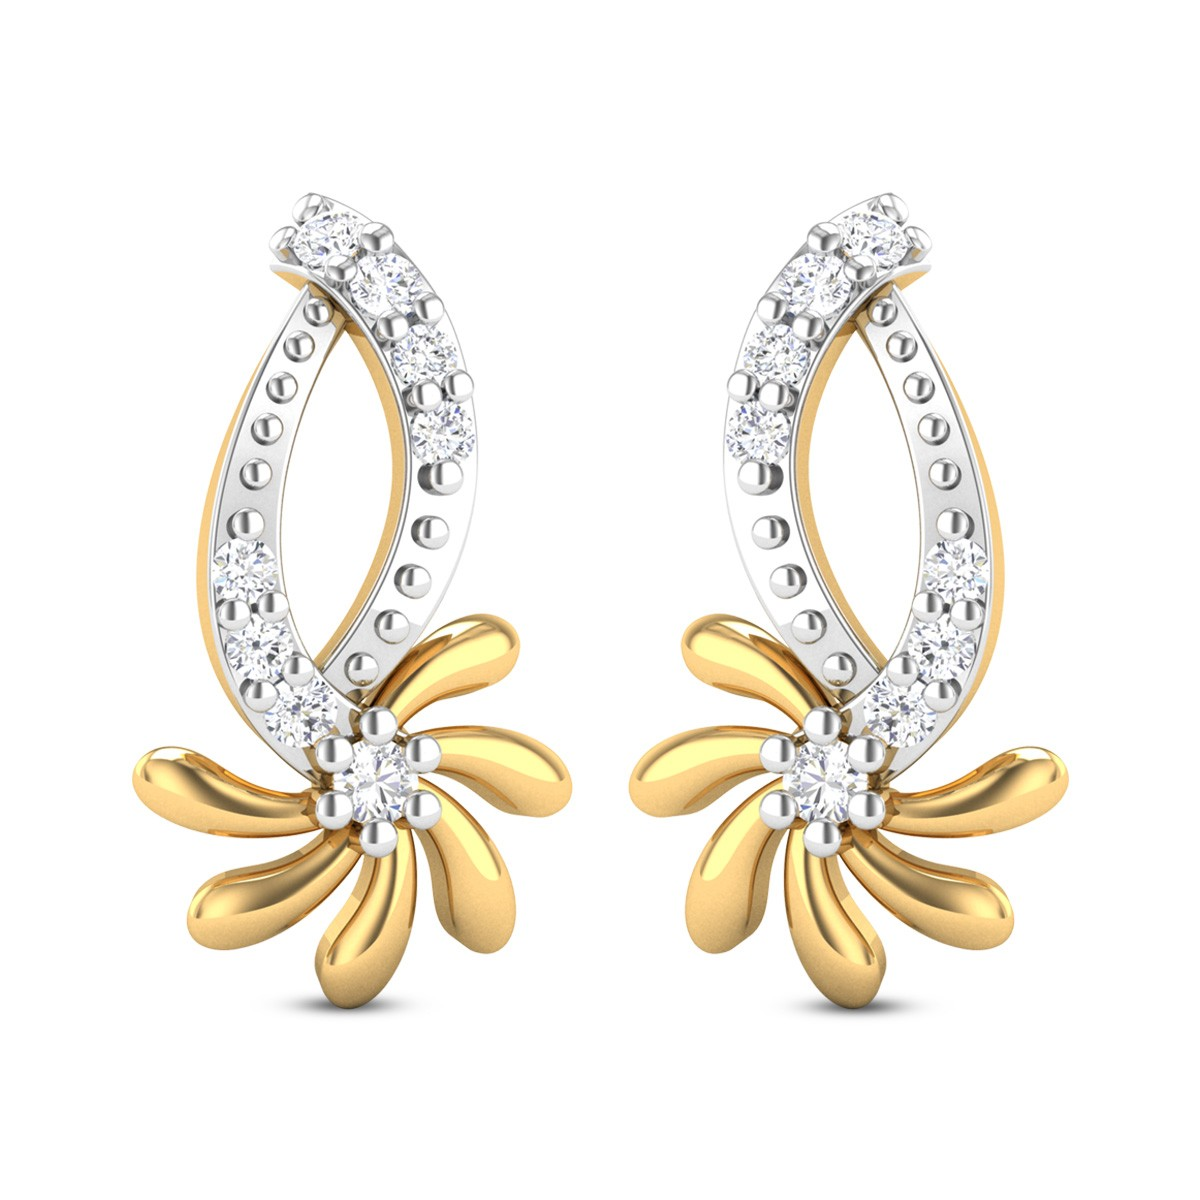 Asbury Diamond Earrings